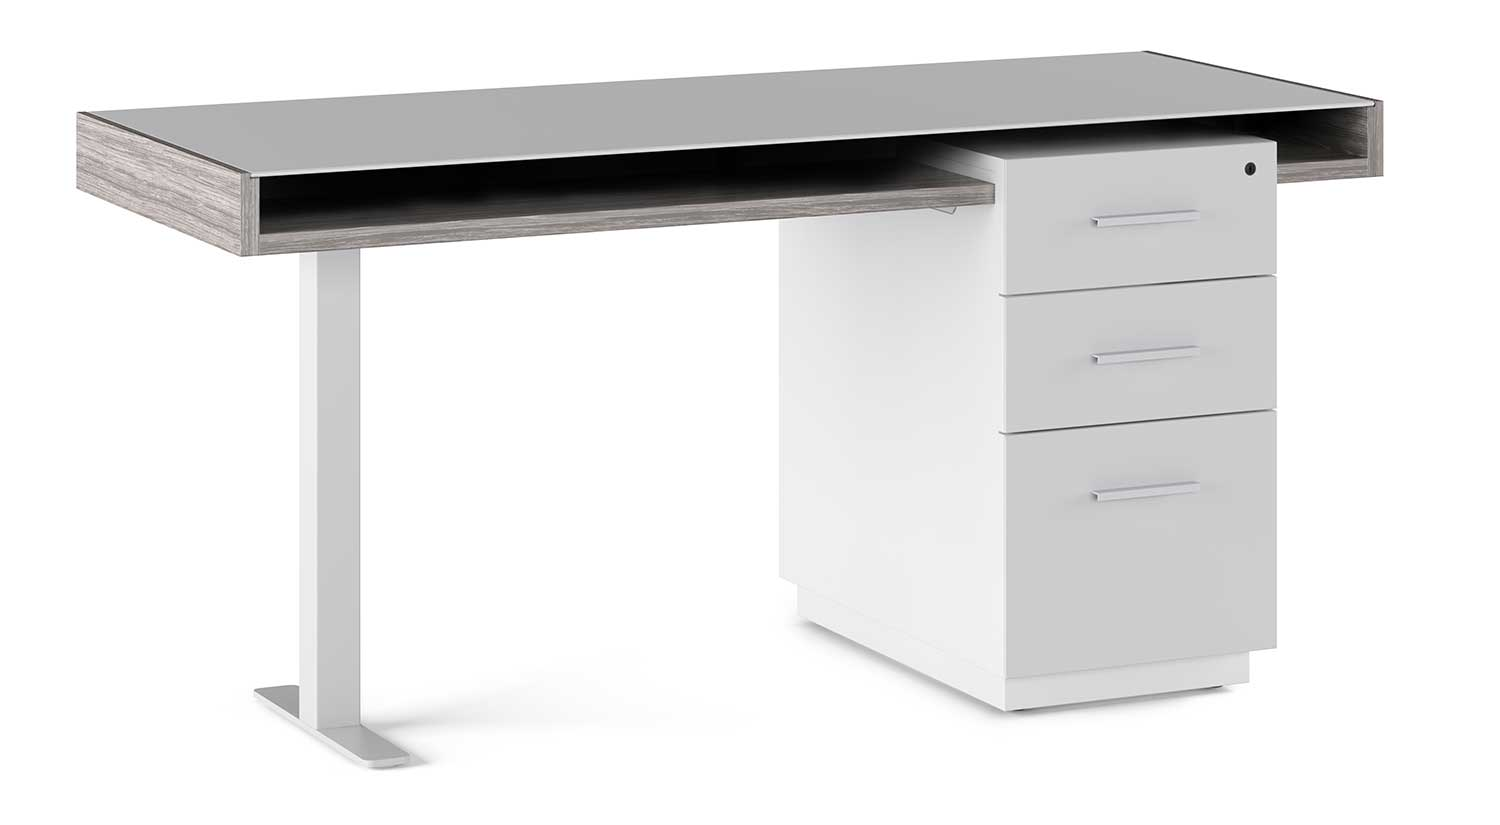 Circle Furniture - Duo Desk | Glass Top, Modern, and ...